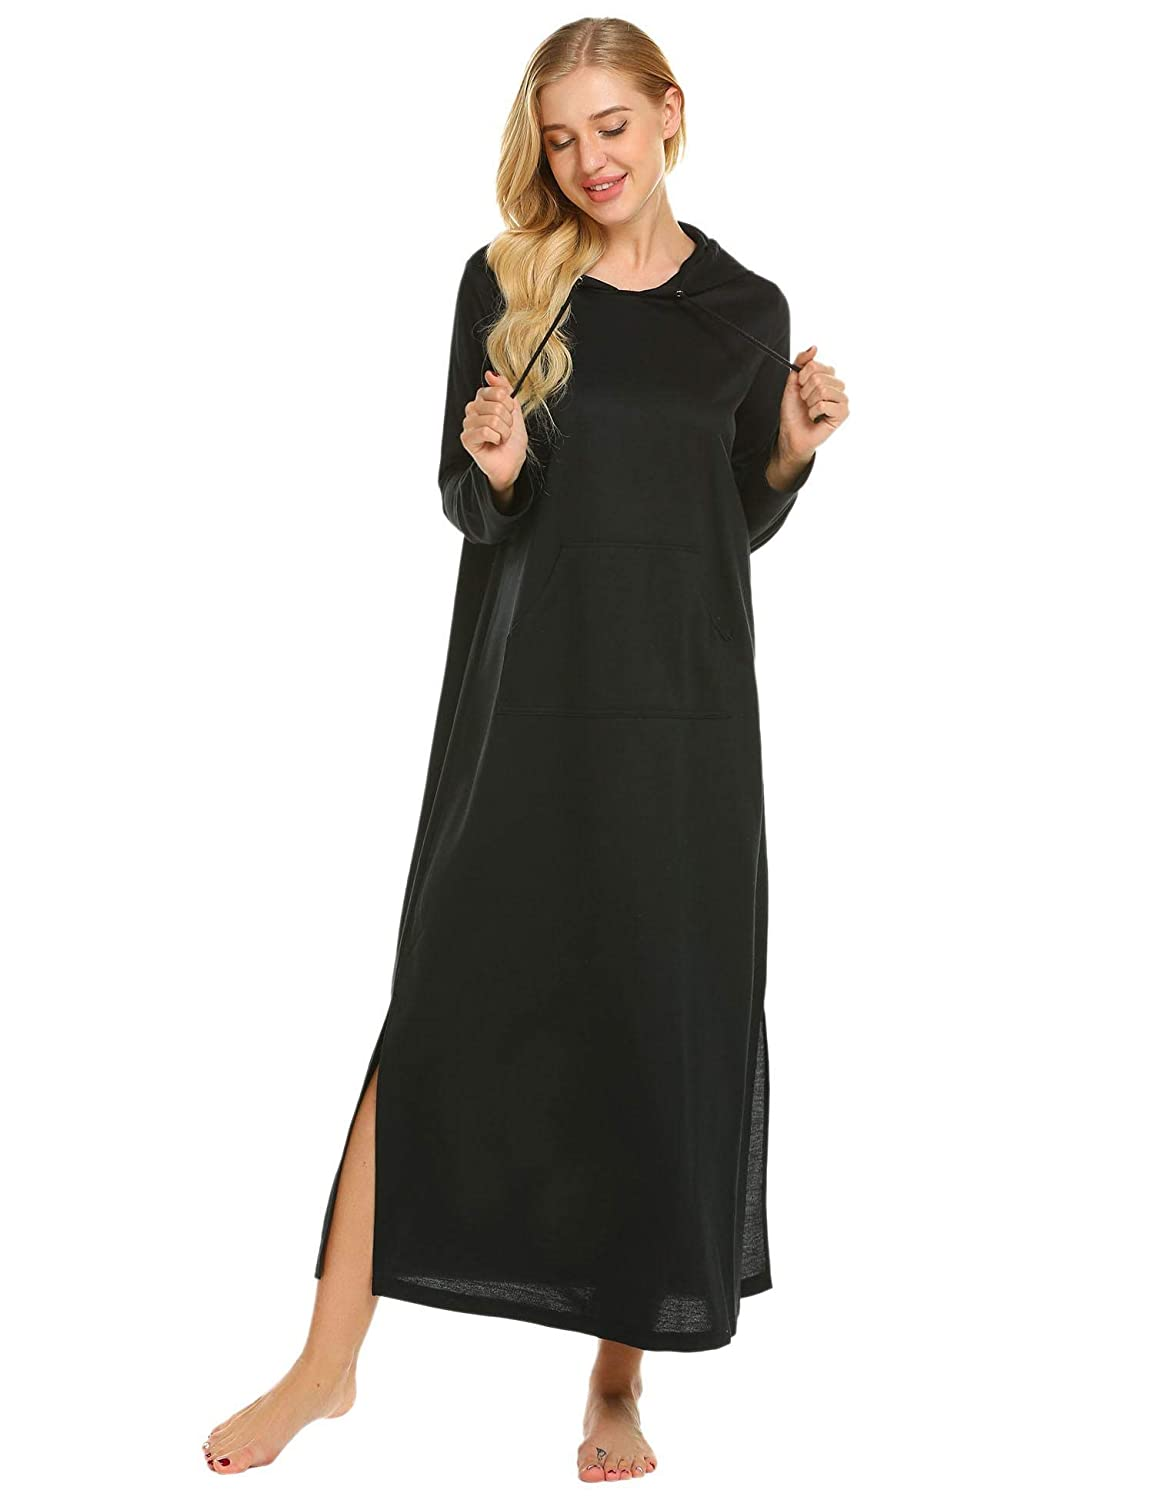 b50b4dc955 Goldenfox Hooded Sleepwear Robe Women Long Sleeve Full Length Nightgowns  Pocket S-XXL at Amazon Women's Clothing store: